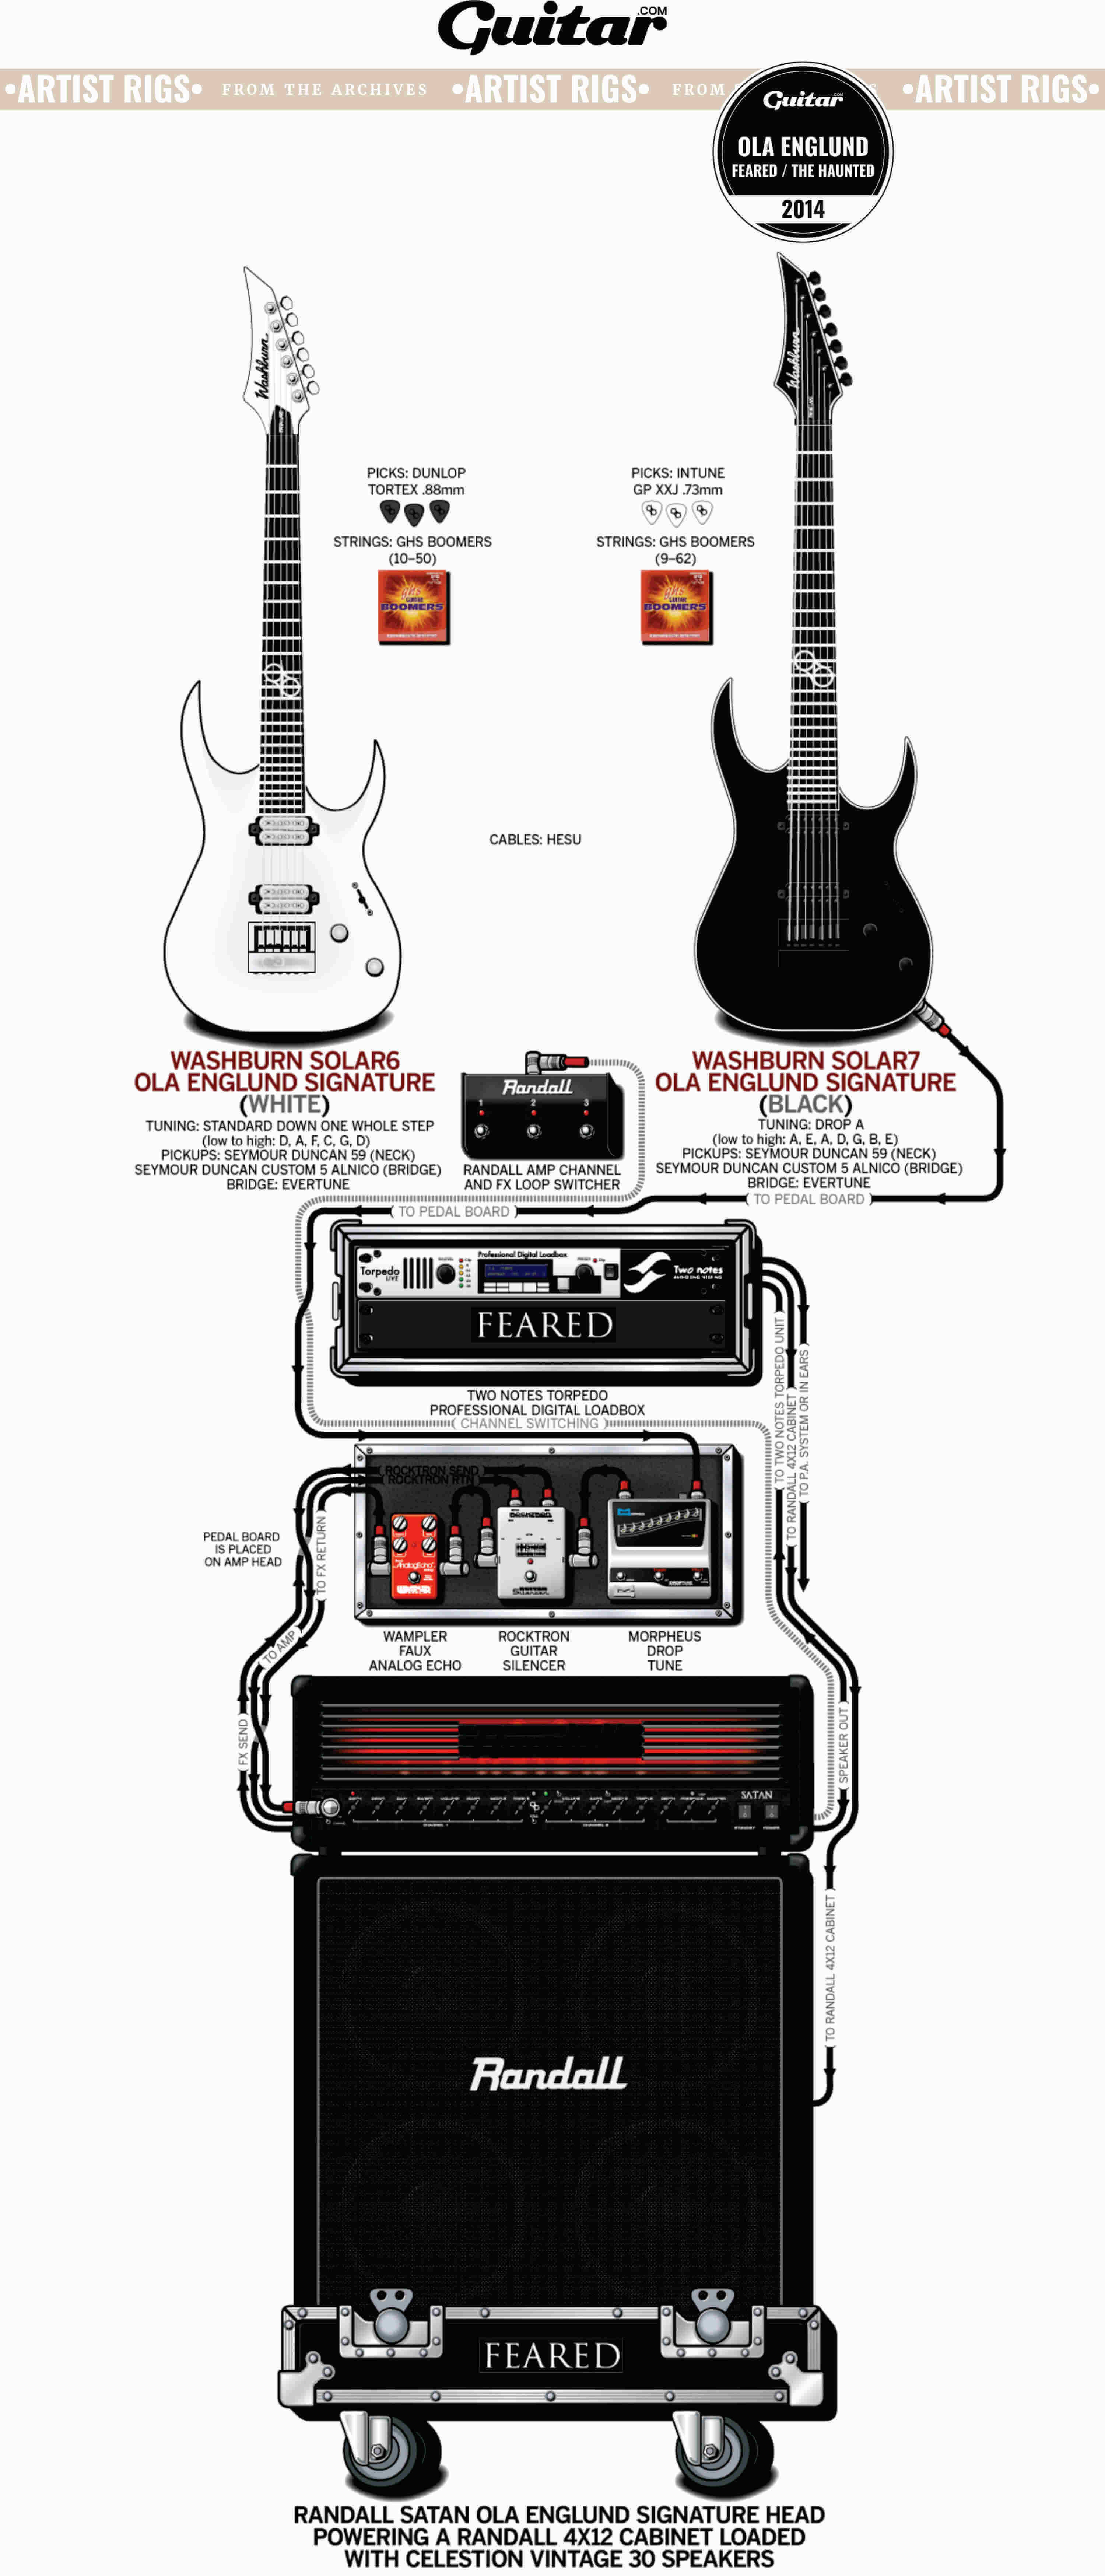 Rig Diagram: Ola Englund, Feared / The Haunted (2014)